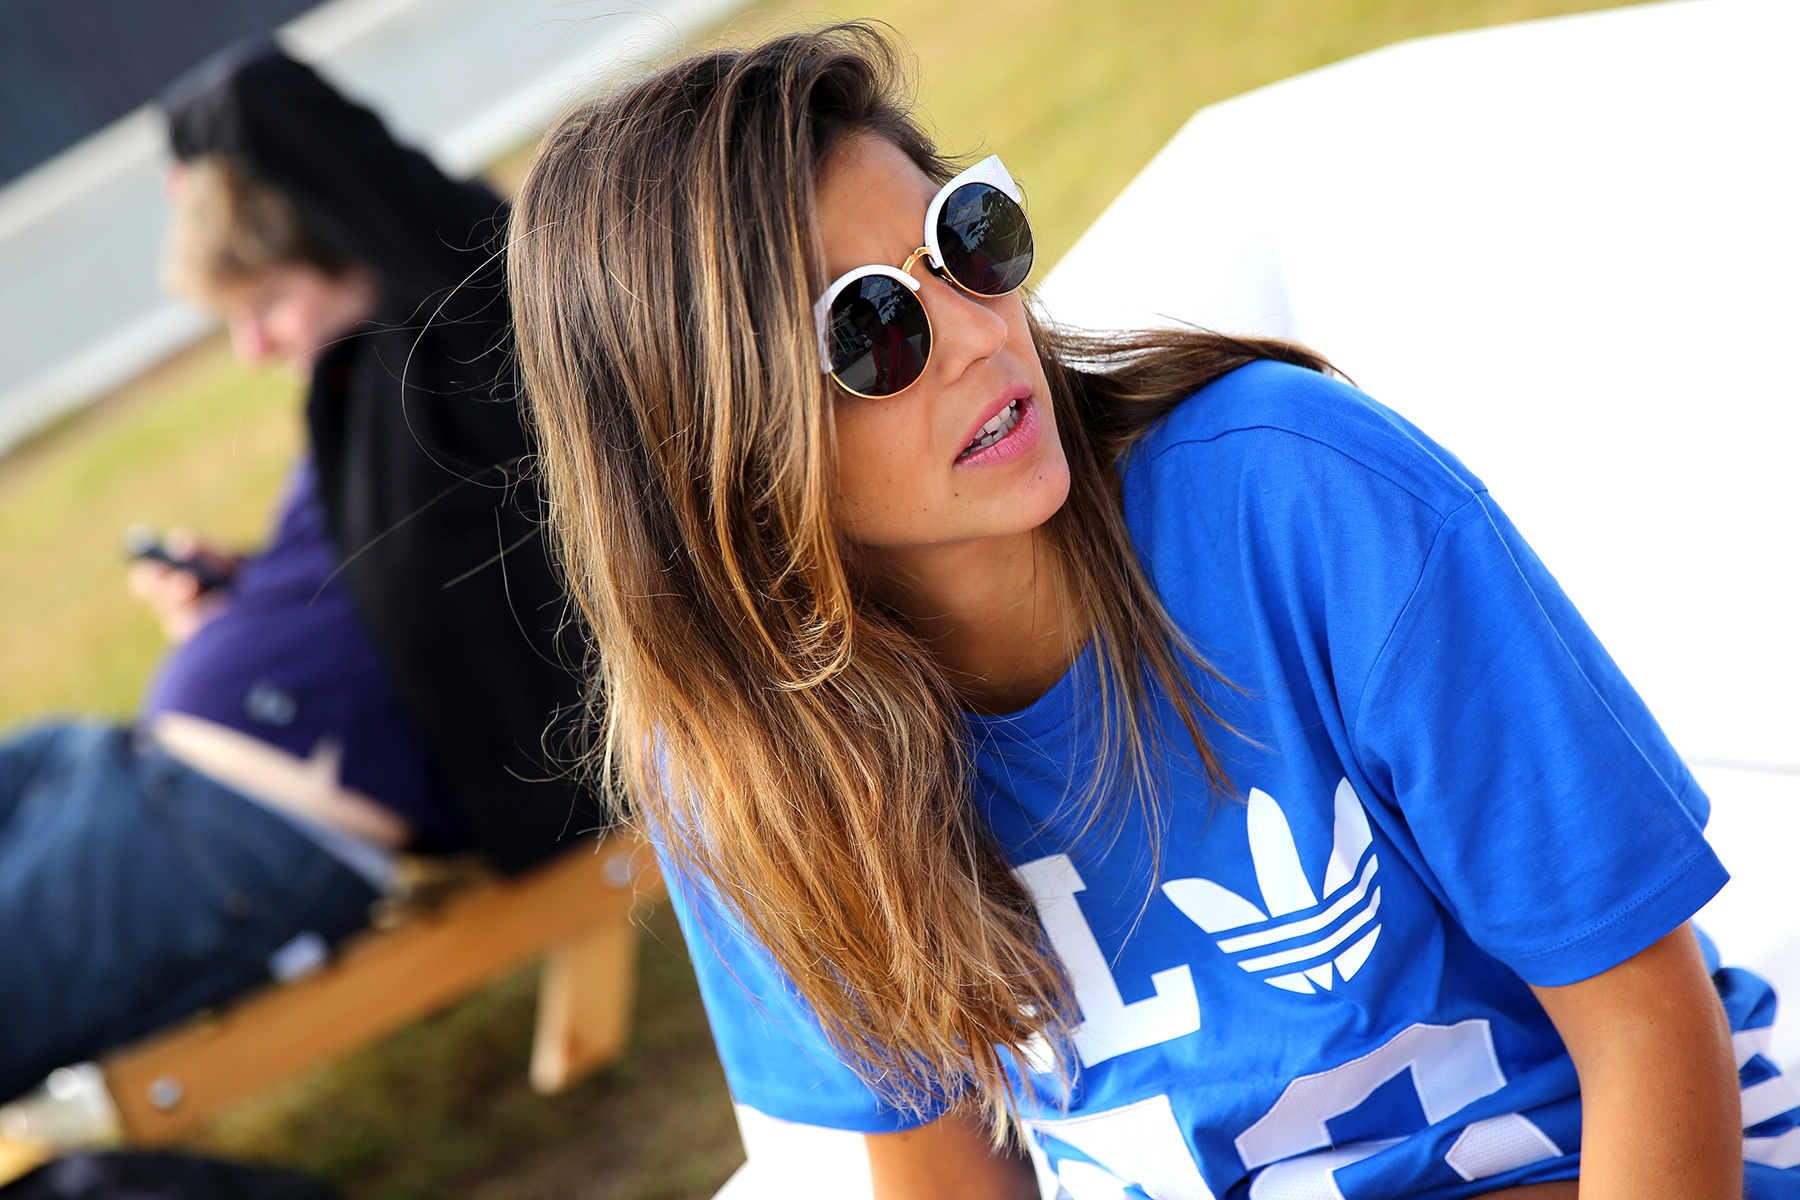 trendy_taste-look-outfit-street_style-ootd-blog-blogger_españa-fashion_spain-moda_españa-festival-primavera_sound-adidas_originals-stan_smith-barcelona-camiseta-zapas-18